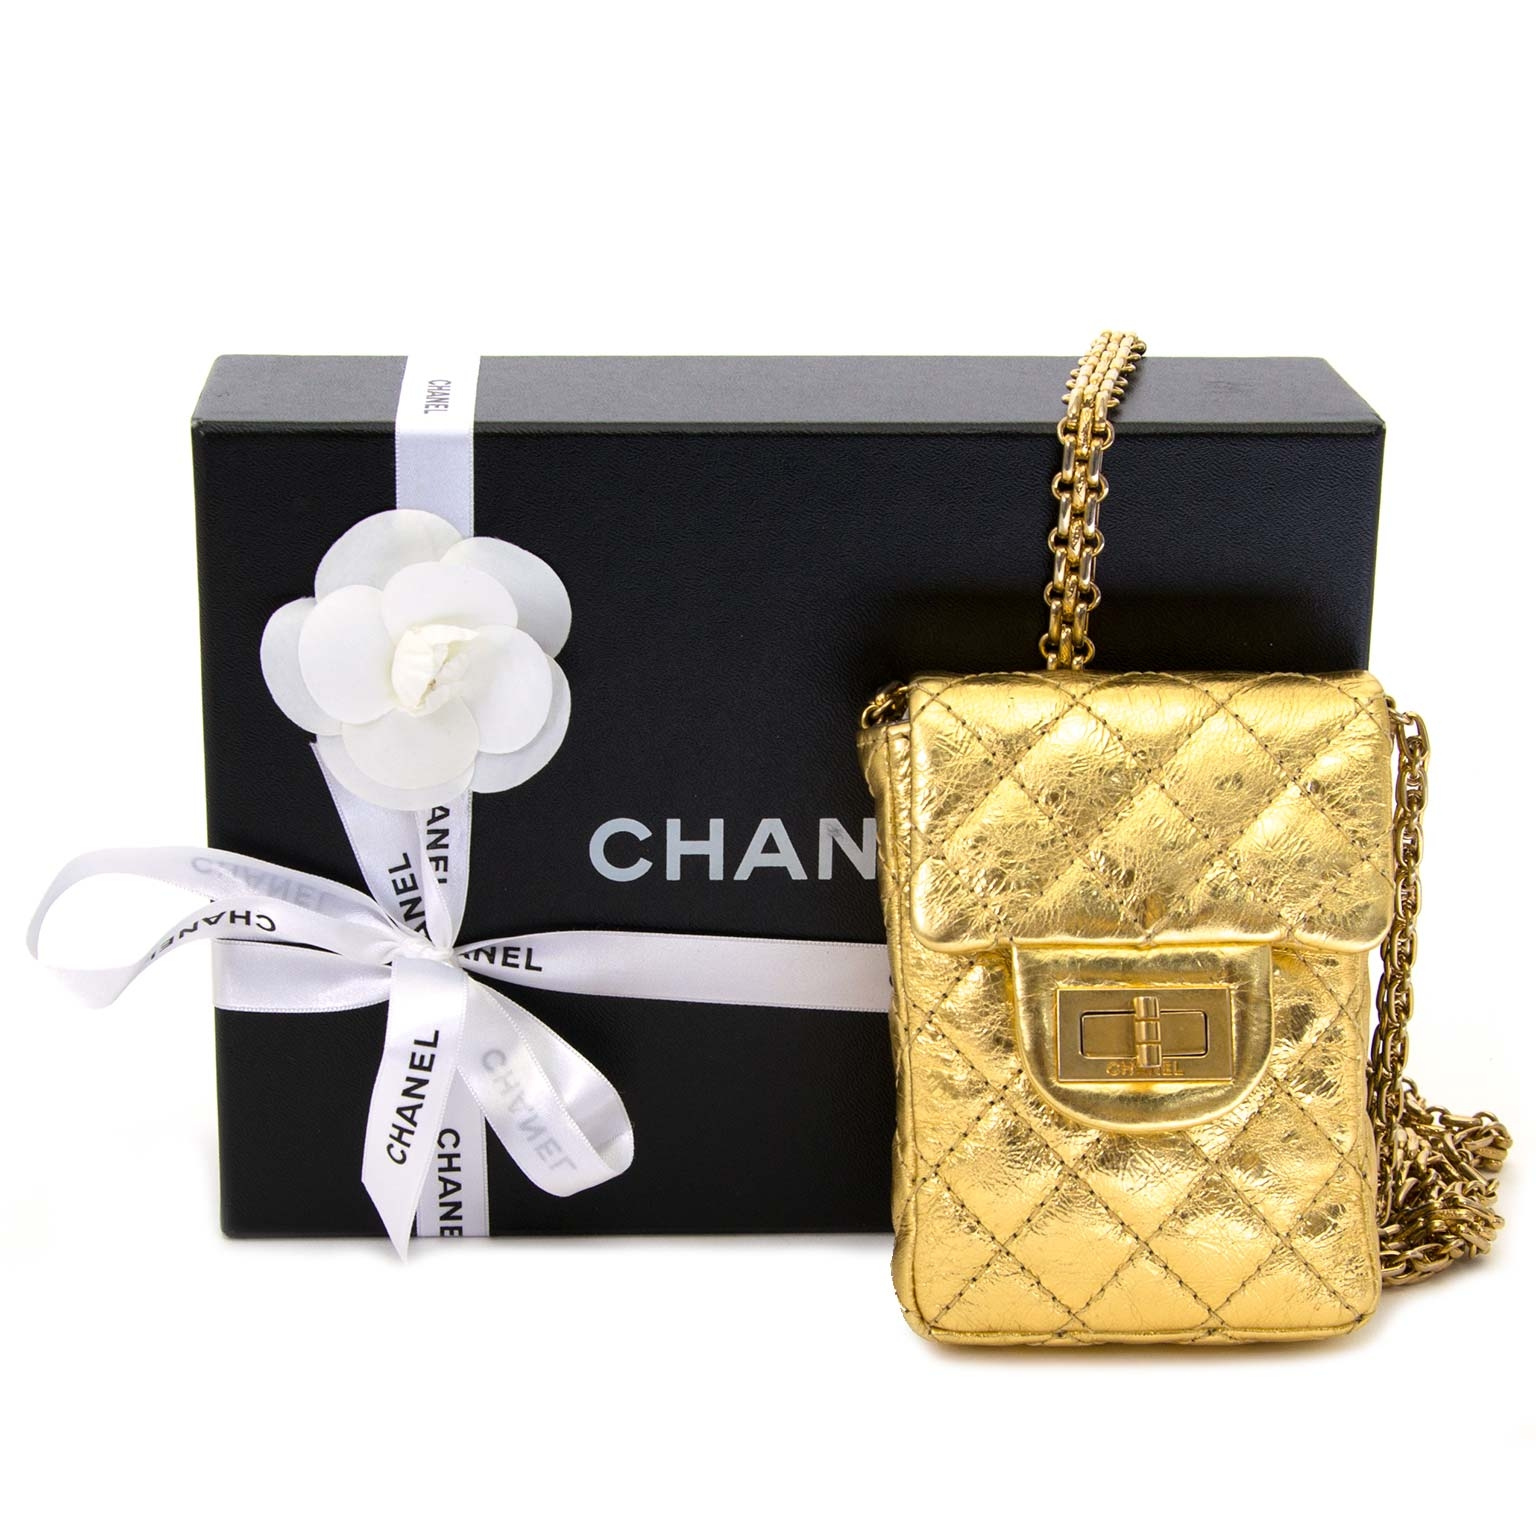 b1cd710b706 ... Chanel 2.55 Reissue Aged Calfskin Gold Phone Pouch for the best price  at Labellov secondhand luxury